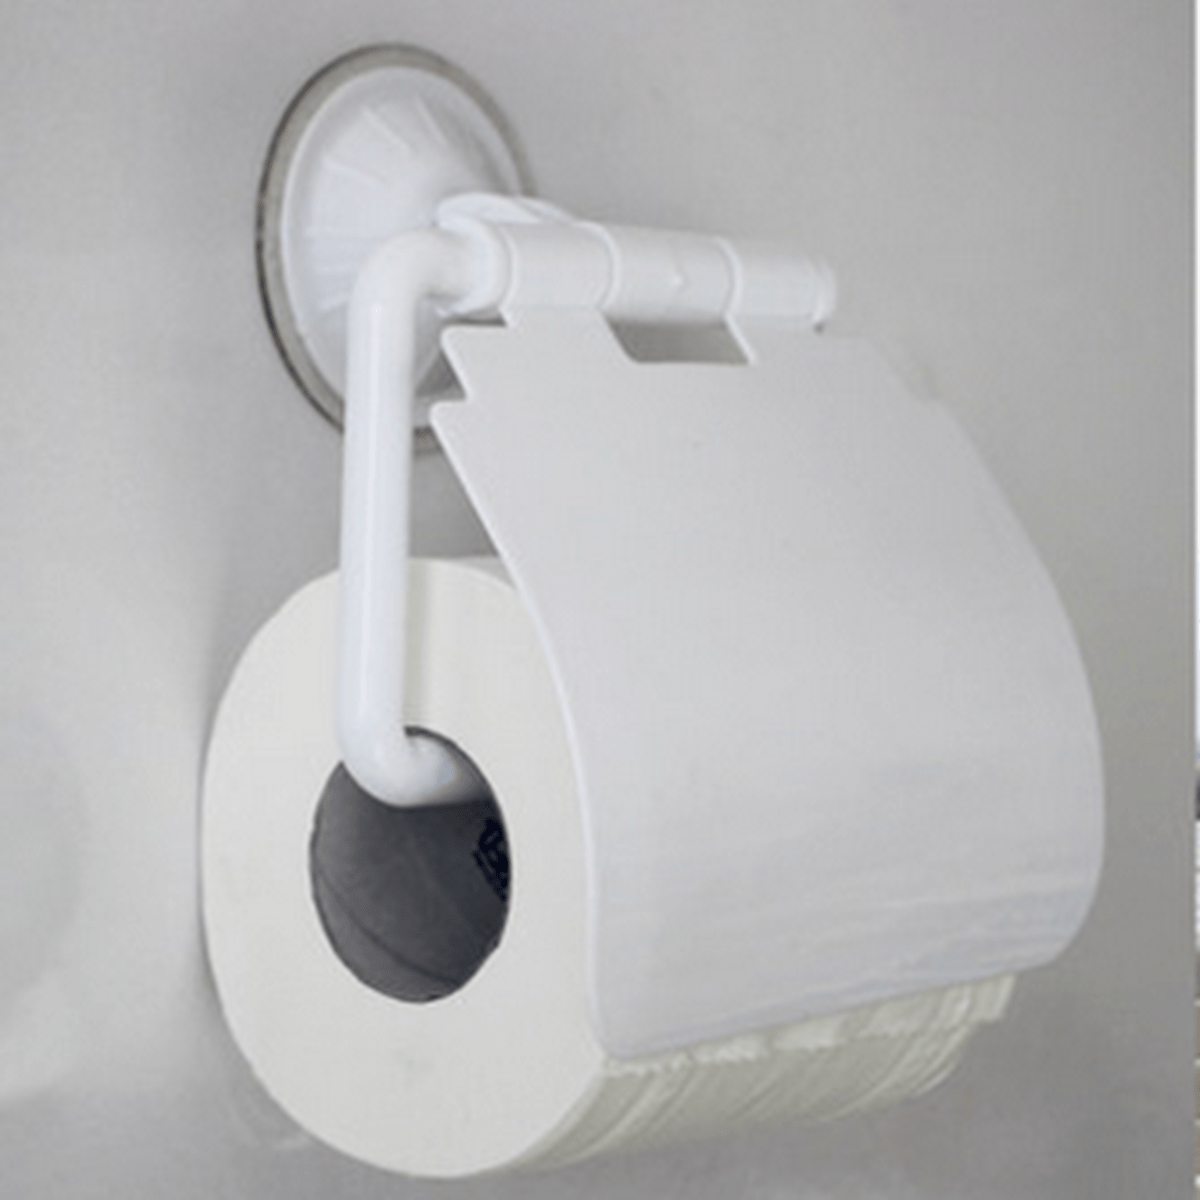 Covered Toilet Paper Storage Toilet Tissue Box Paper Holder Wall Mounted Sucker